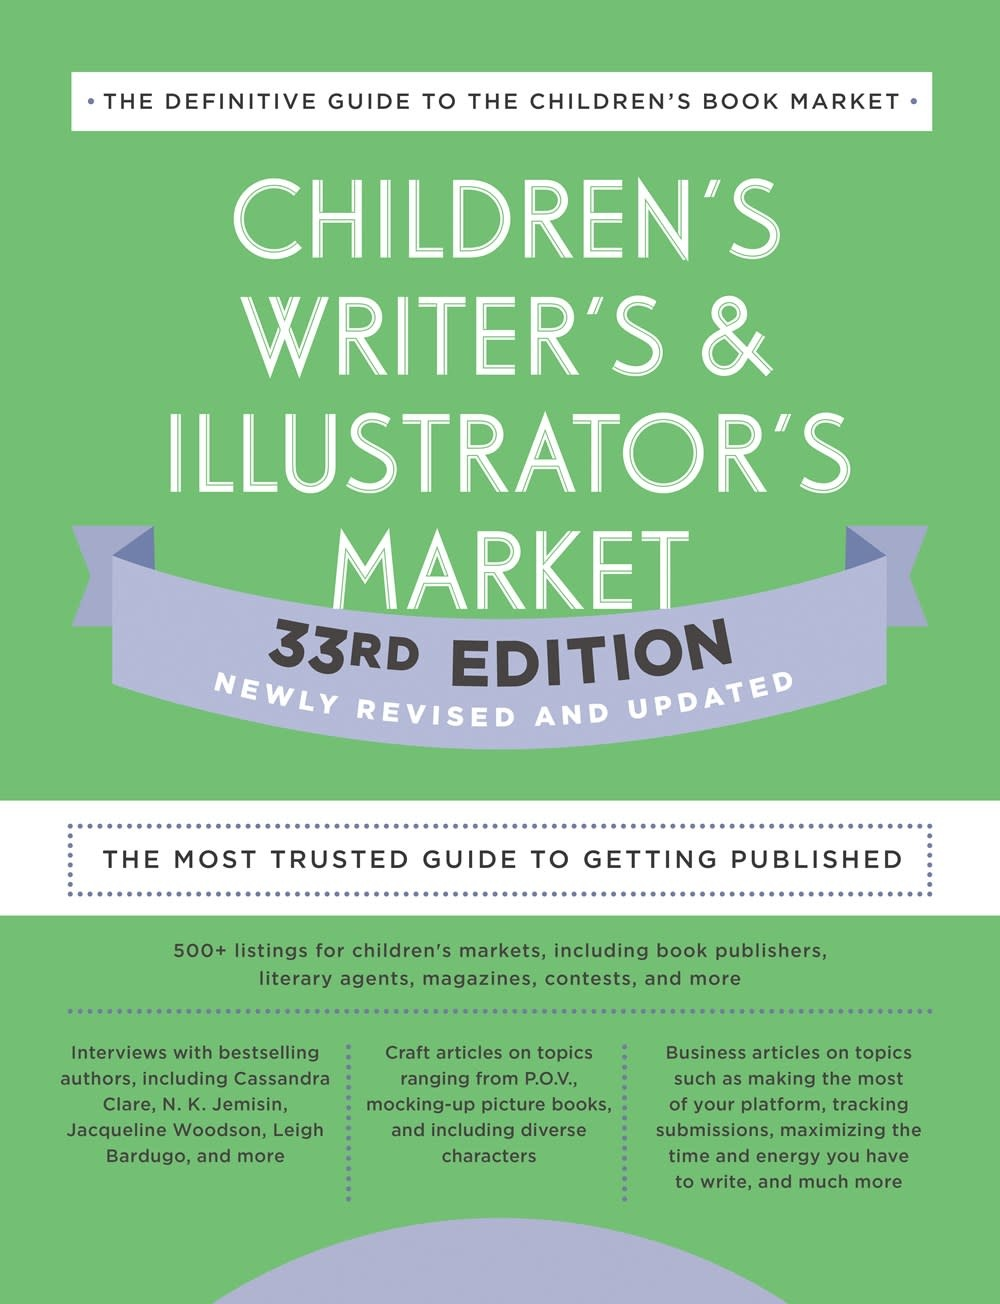 Children's Writer's & Illustrator's Market (33rd Edition): The Most Trusted Guide to Getting Published